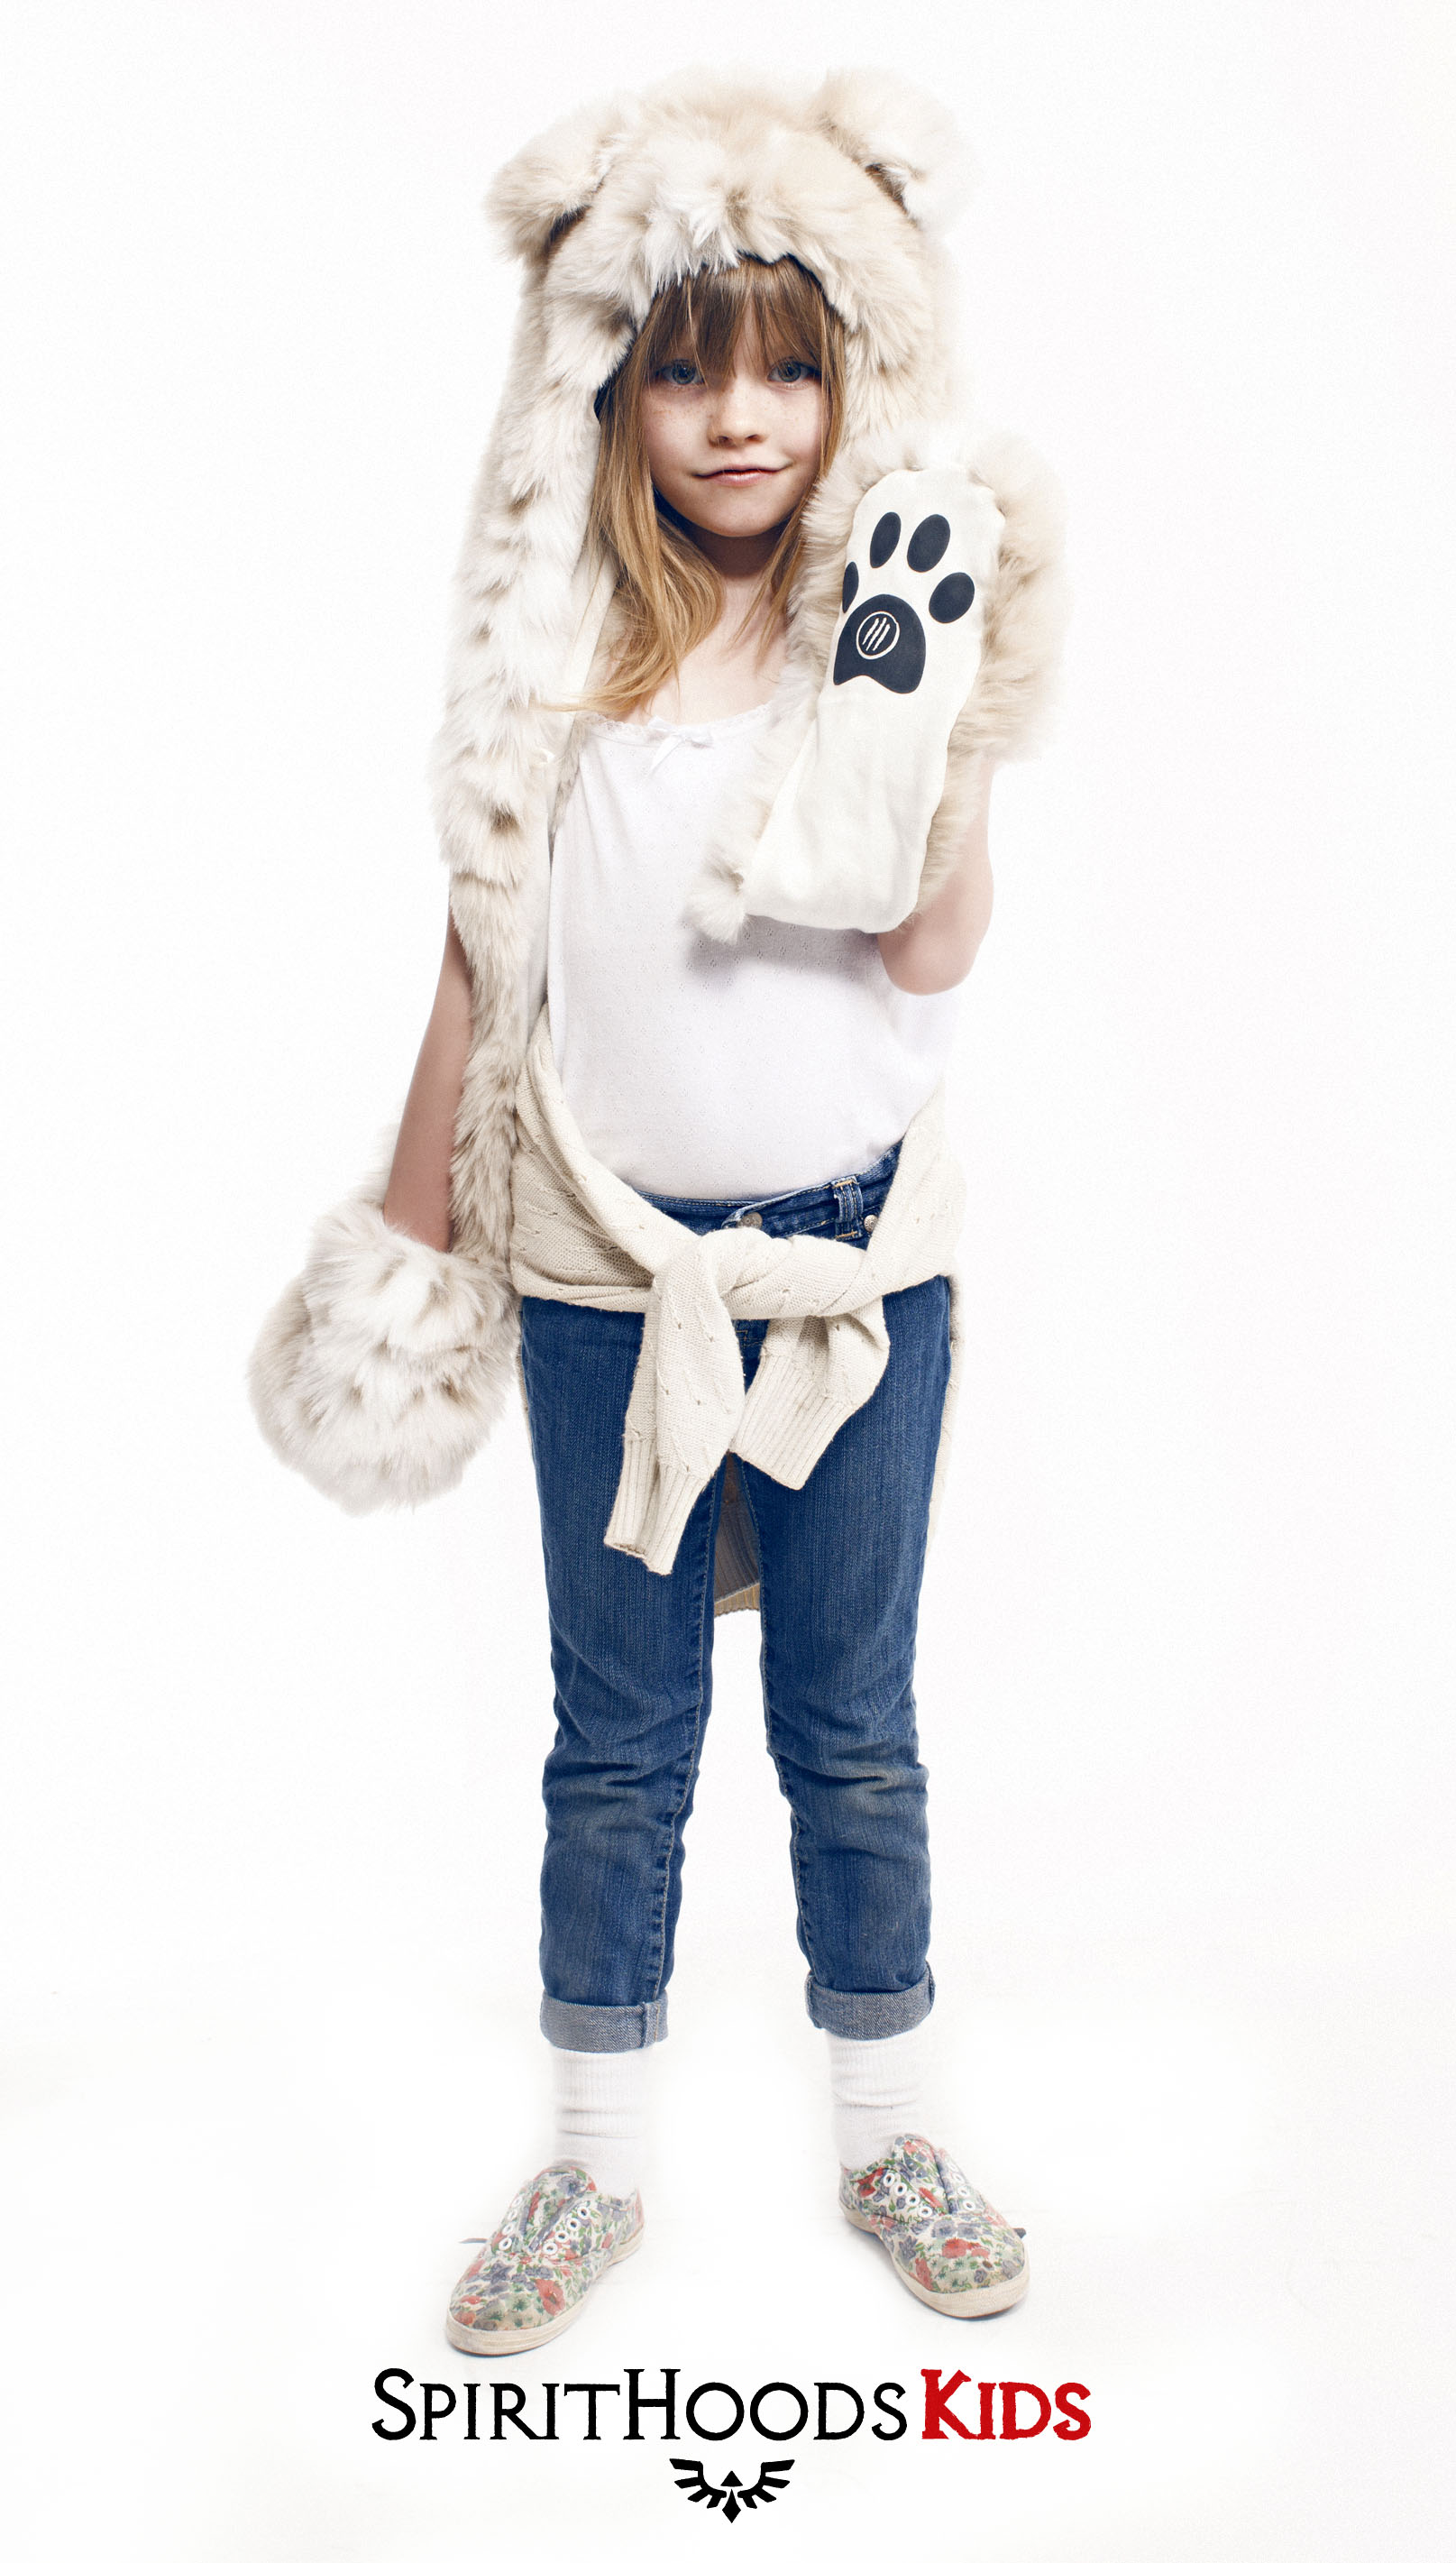 Spirithoods_Kids_Single_05.jpg